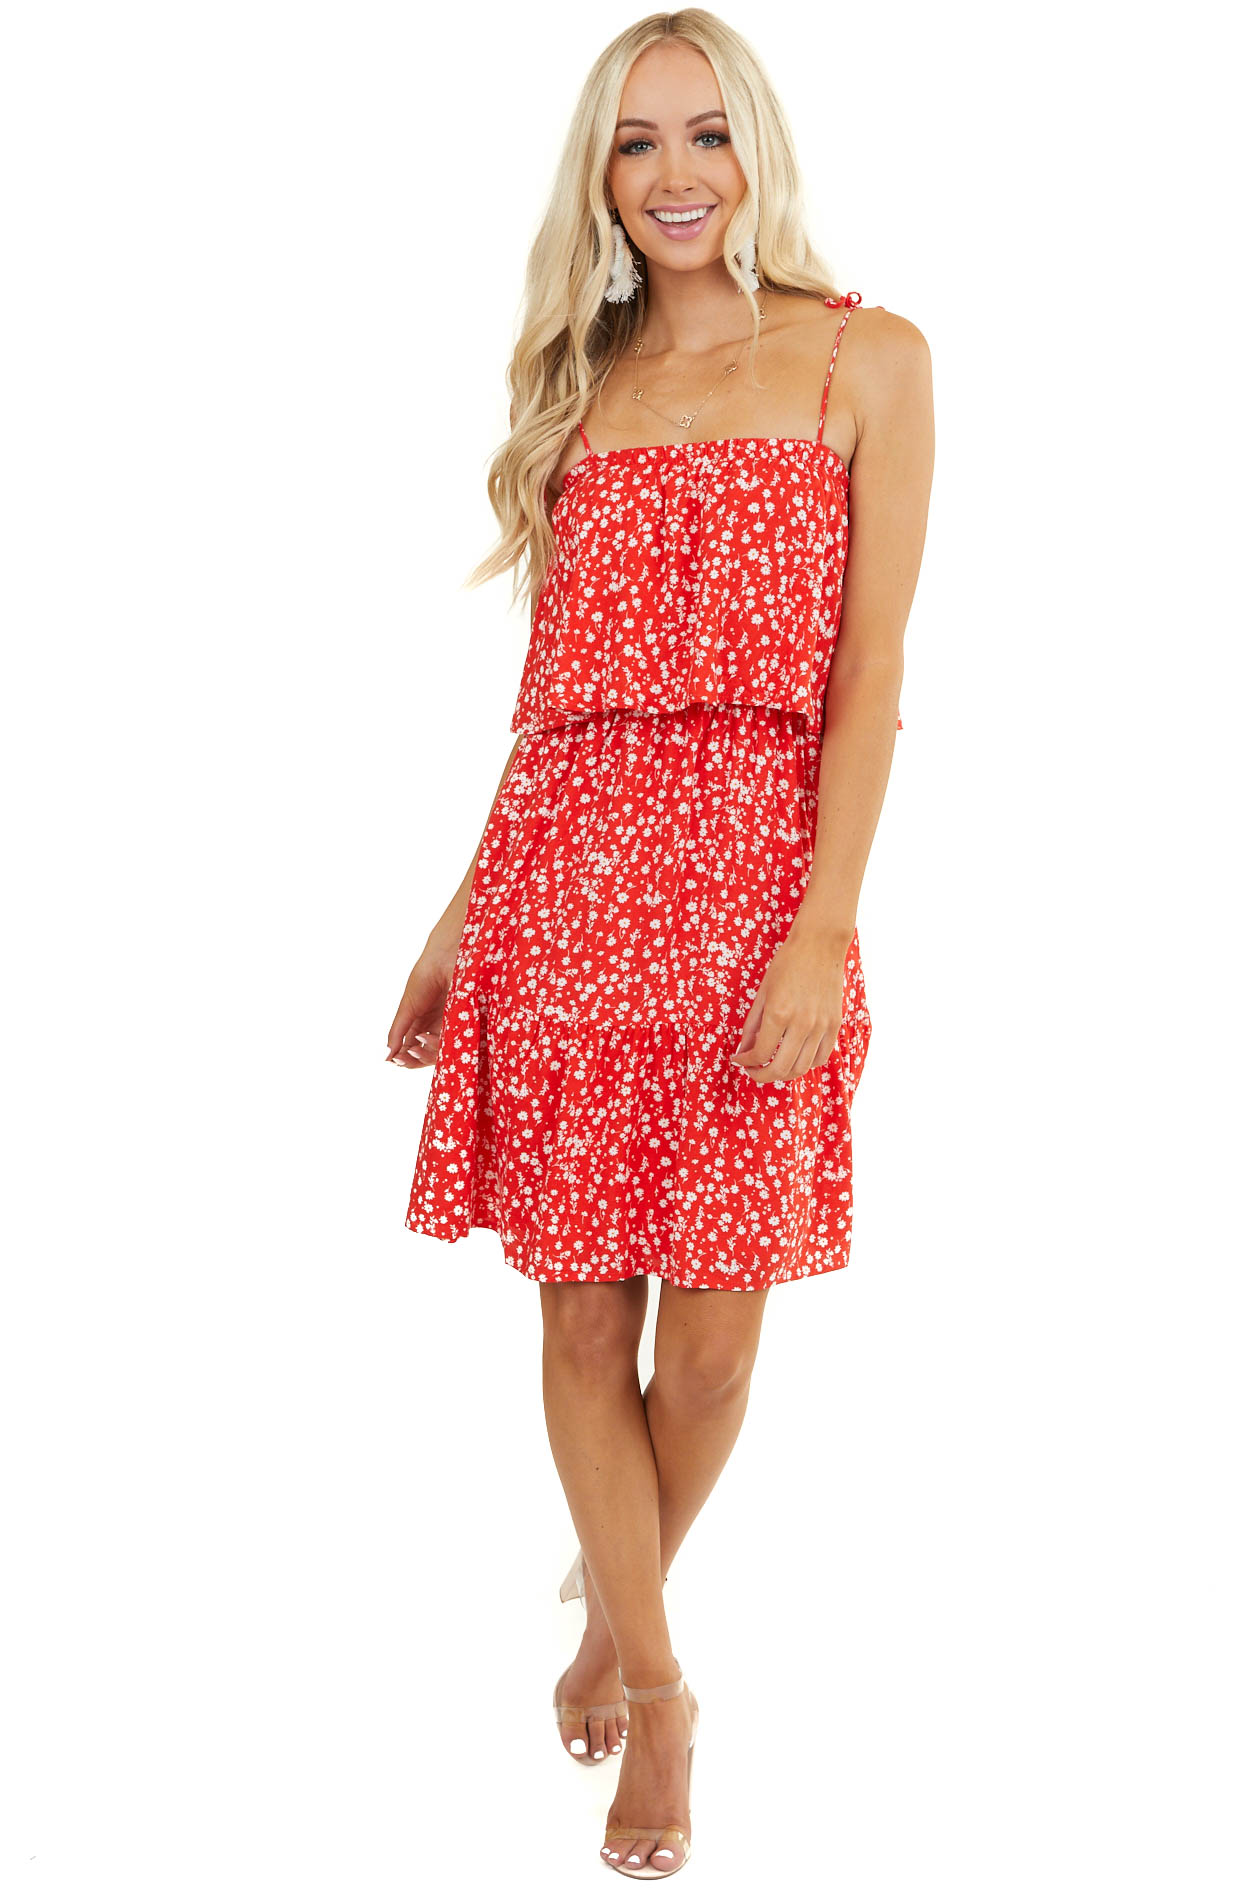 Tomato Red Floral Print Spaghetti Strap Dress with Overlay